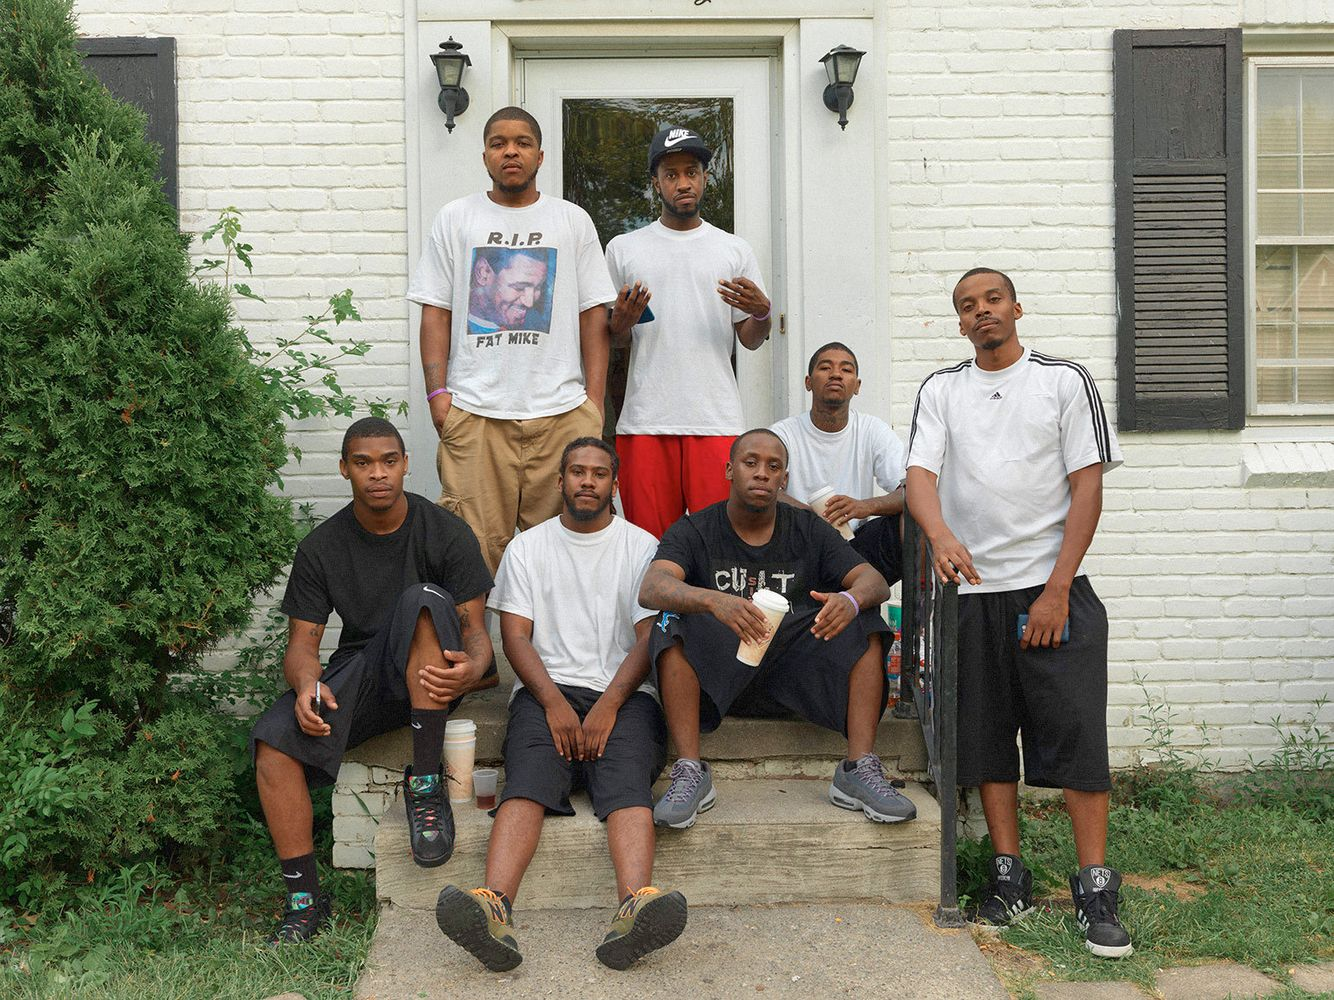 Brandon (in red shorts) celebrates his birthday with friends, Eastside, Detroit 2015